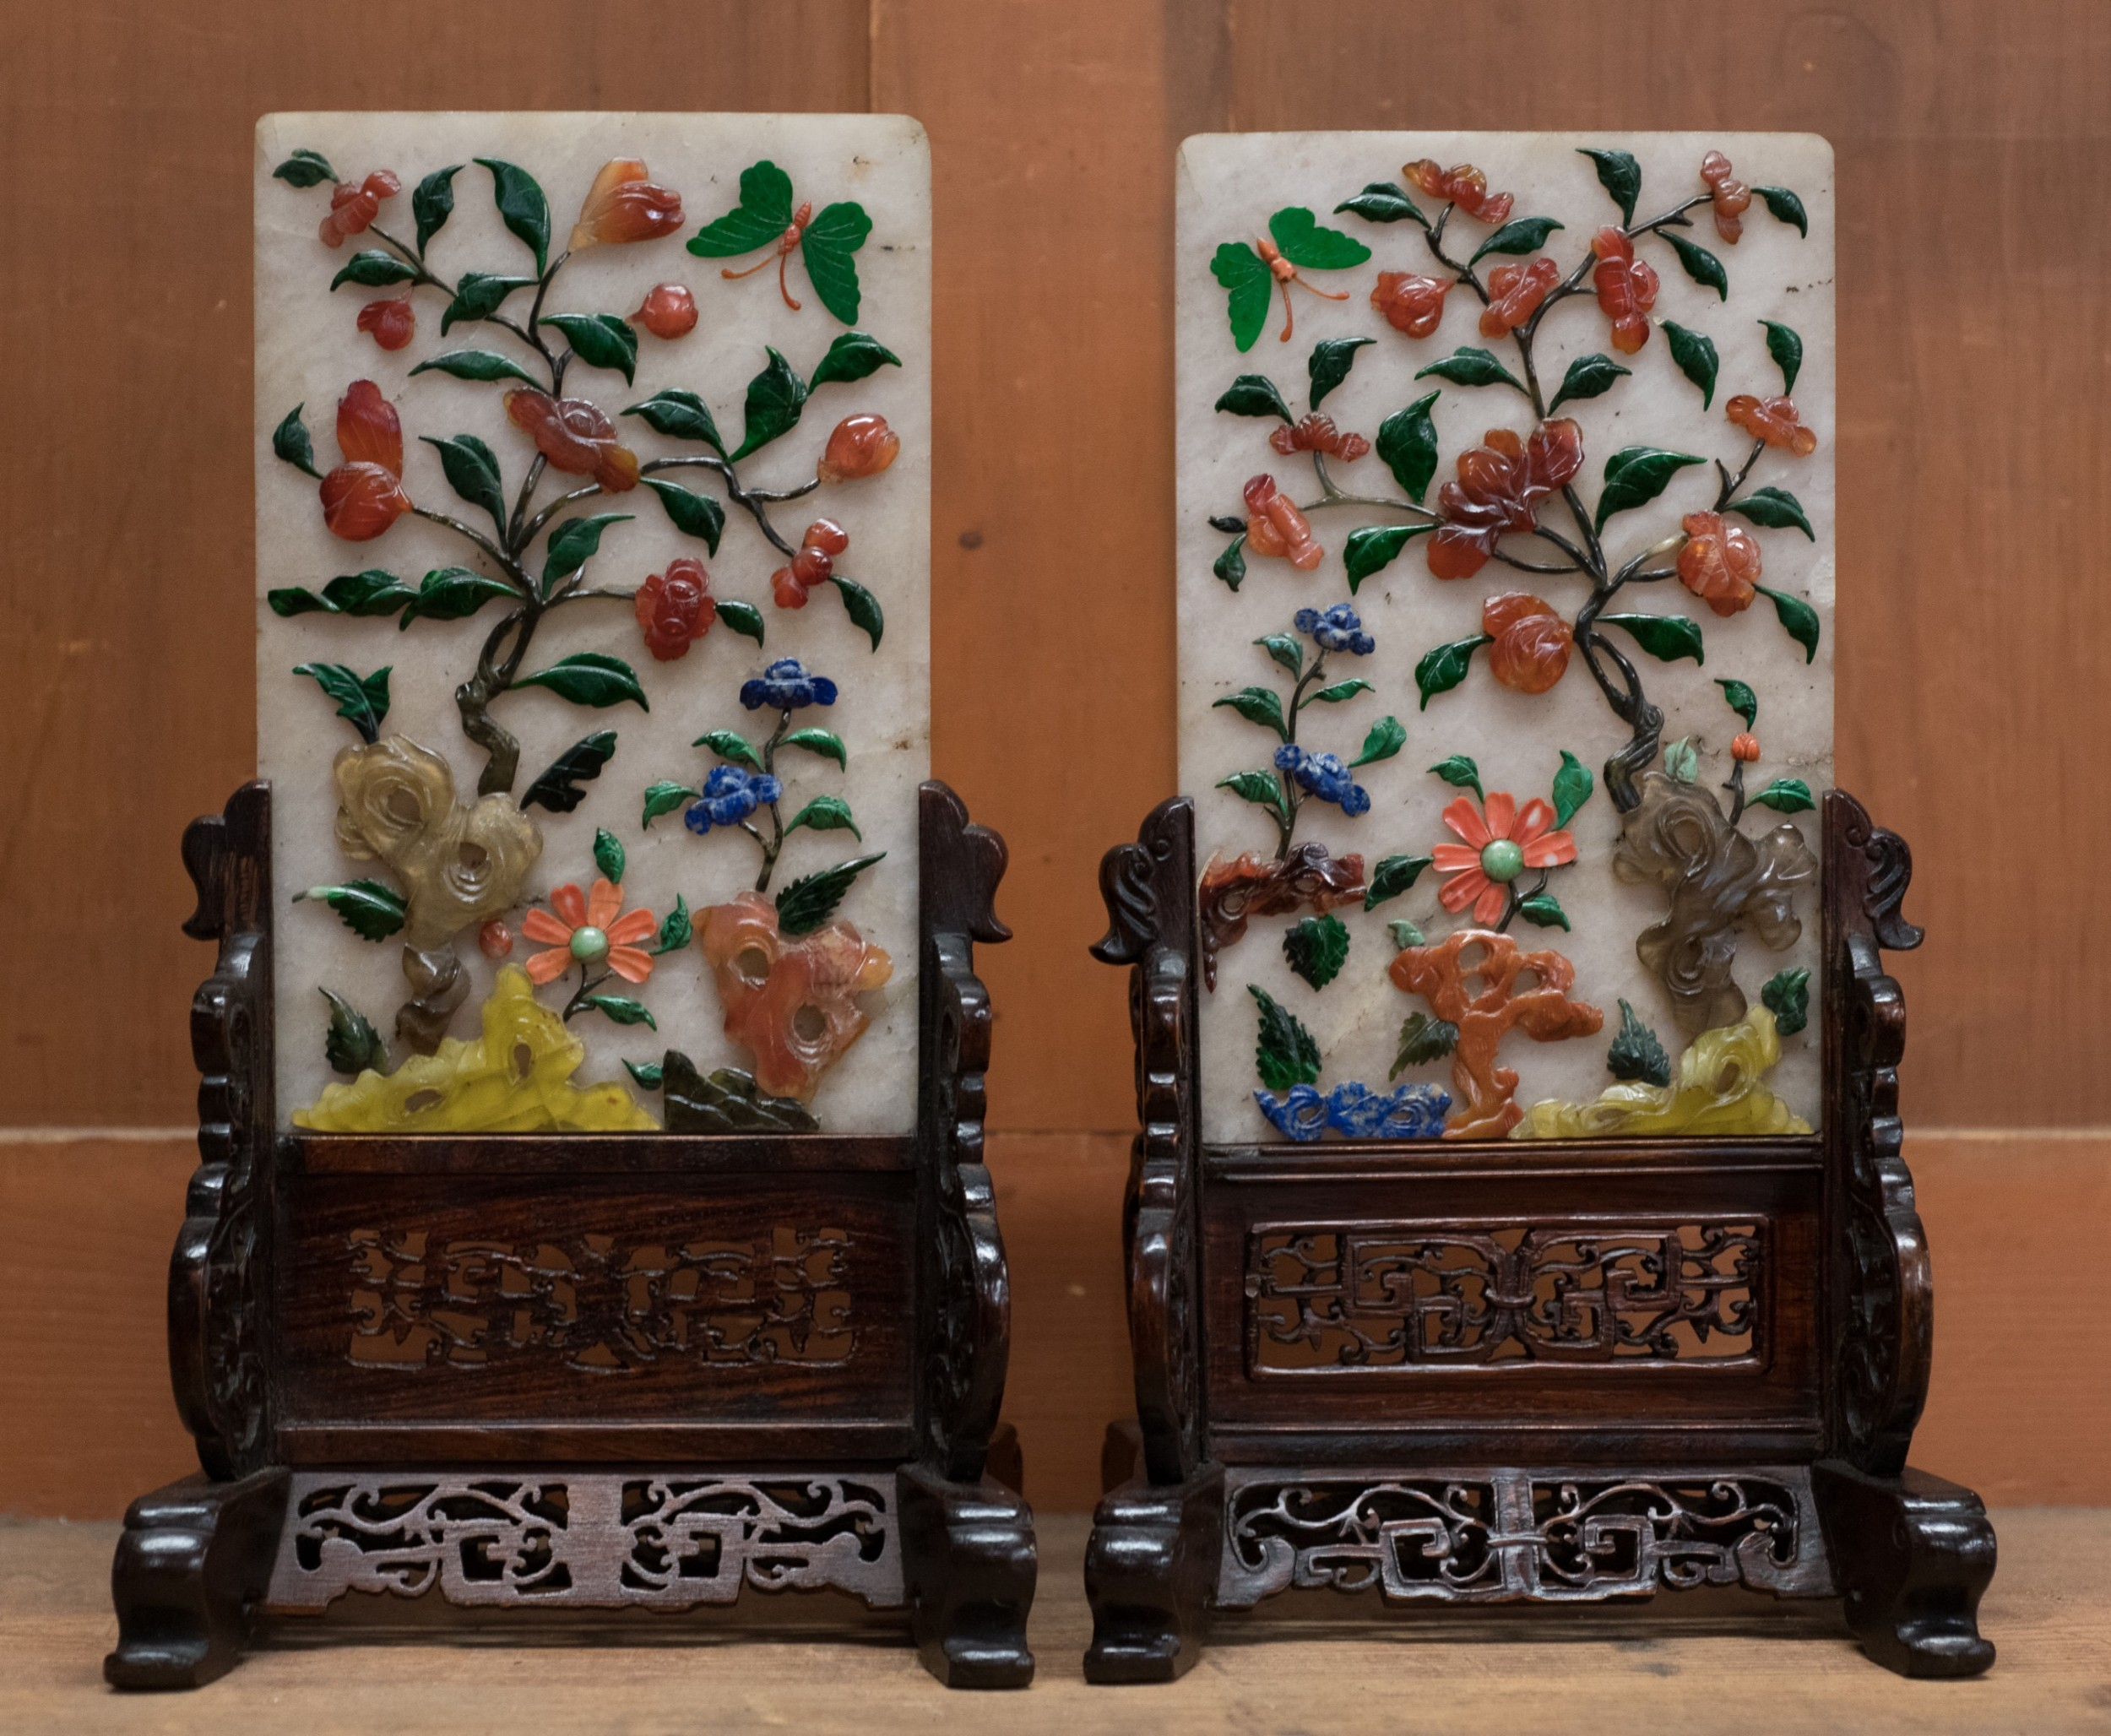 pair of chinese hardstone inlaid table screens